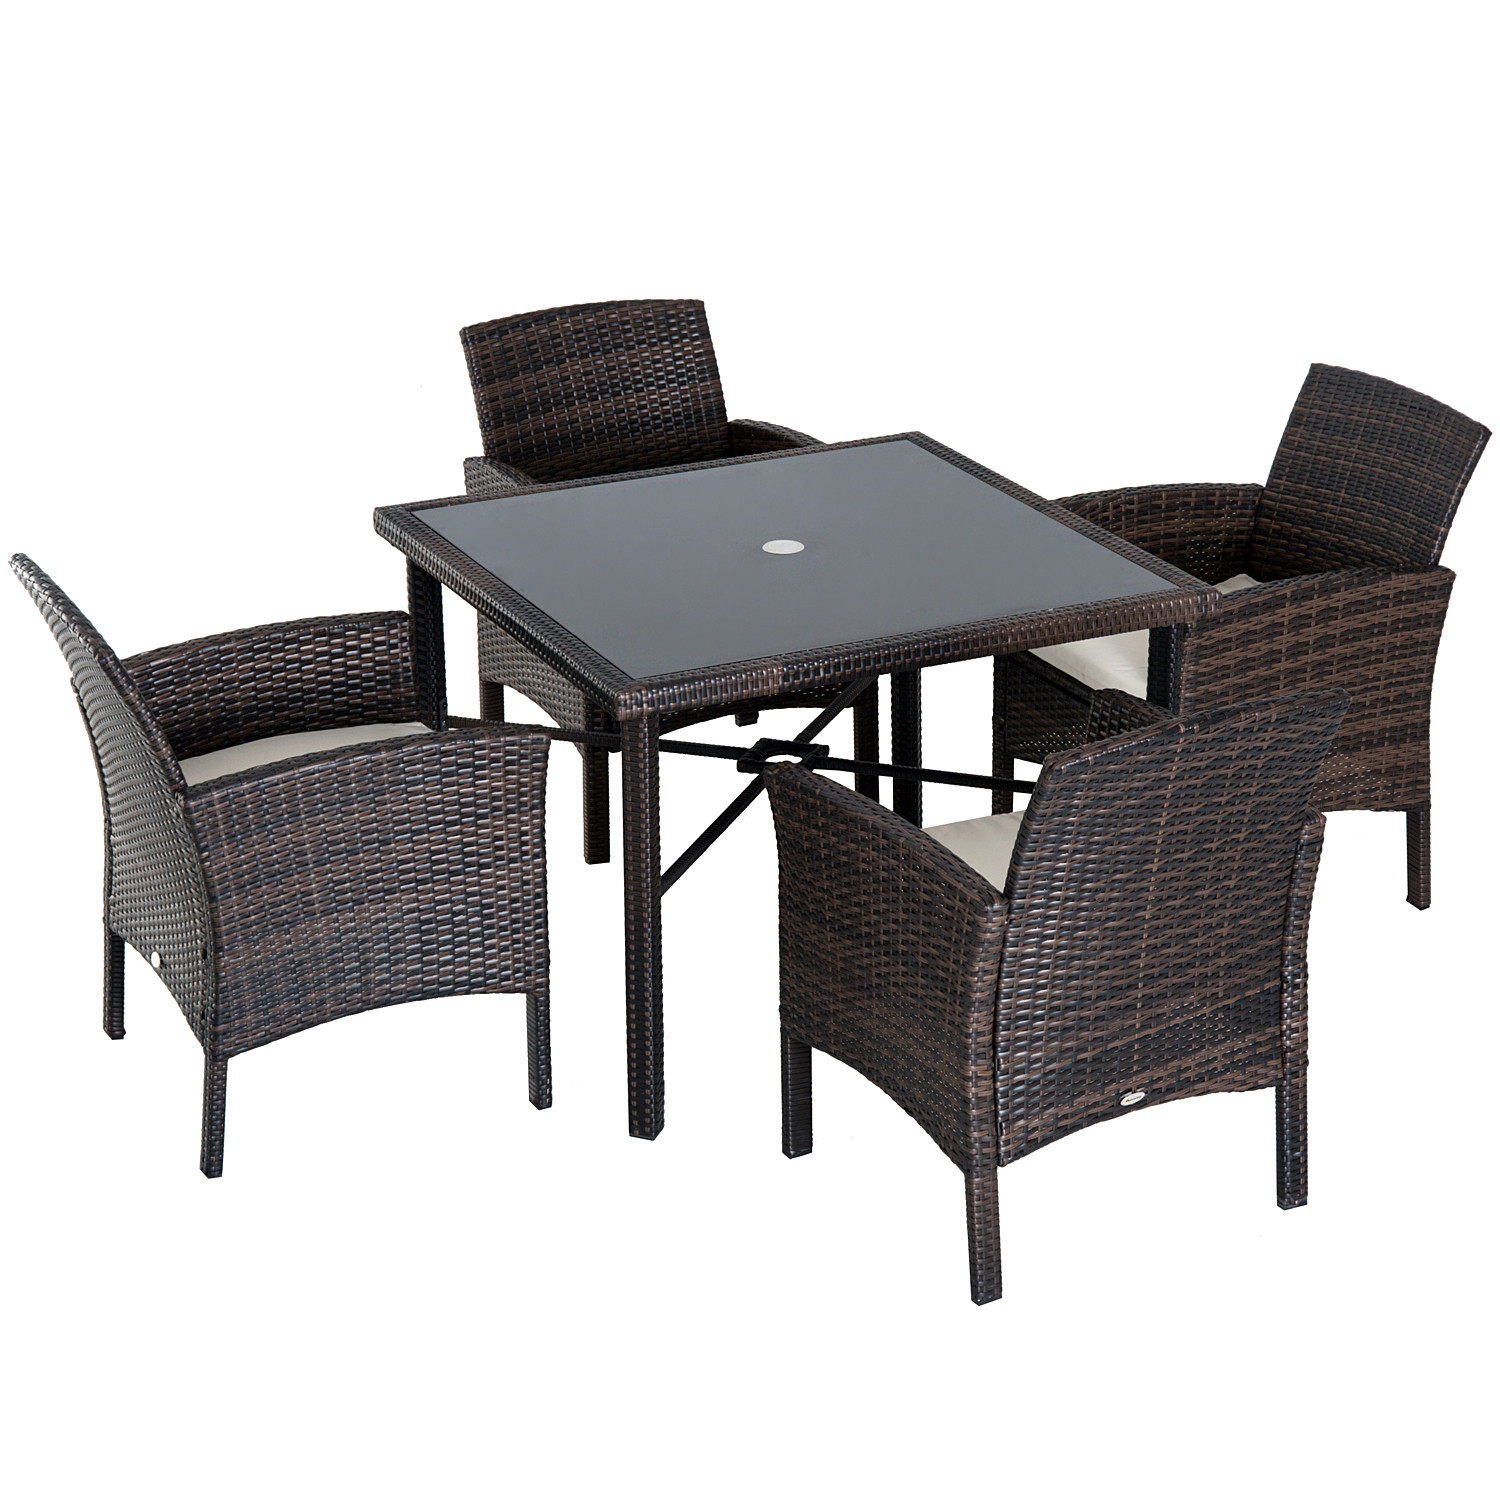 Outsunny 5 Piece Outdoor Patio Rattan Wicker Table And Chair Set